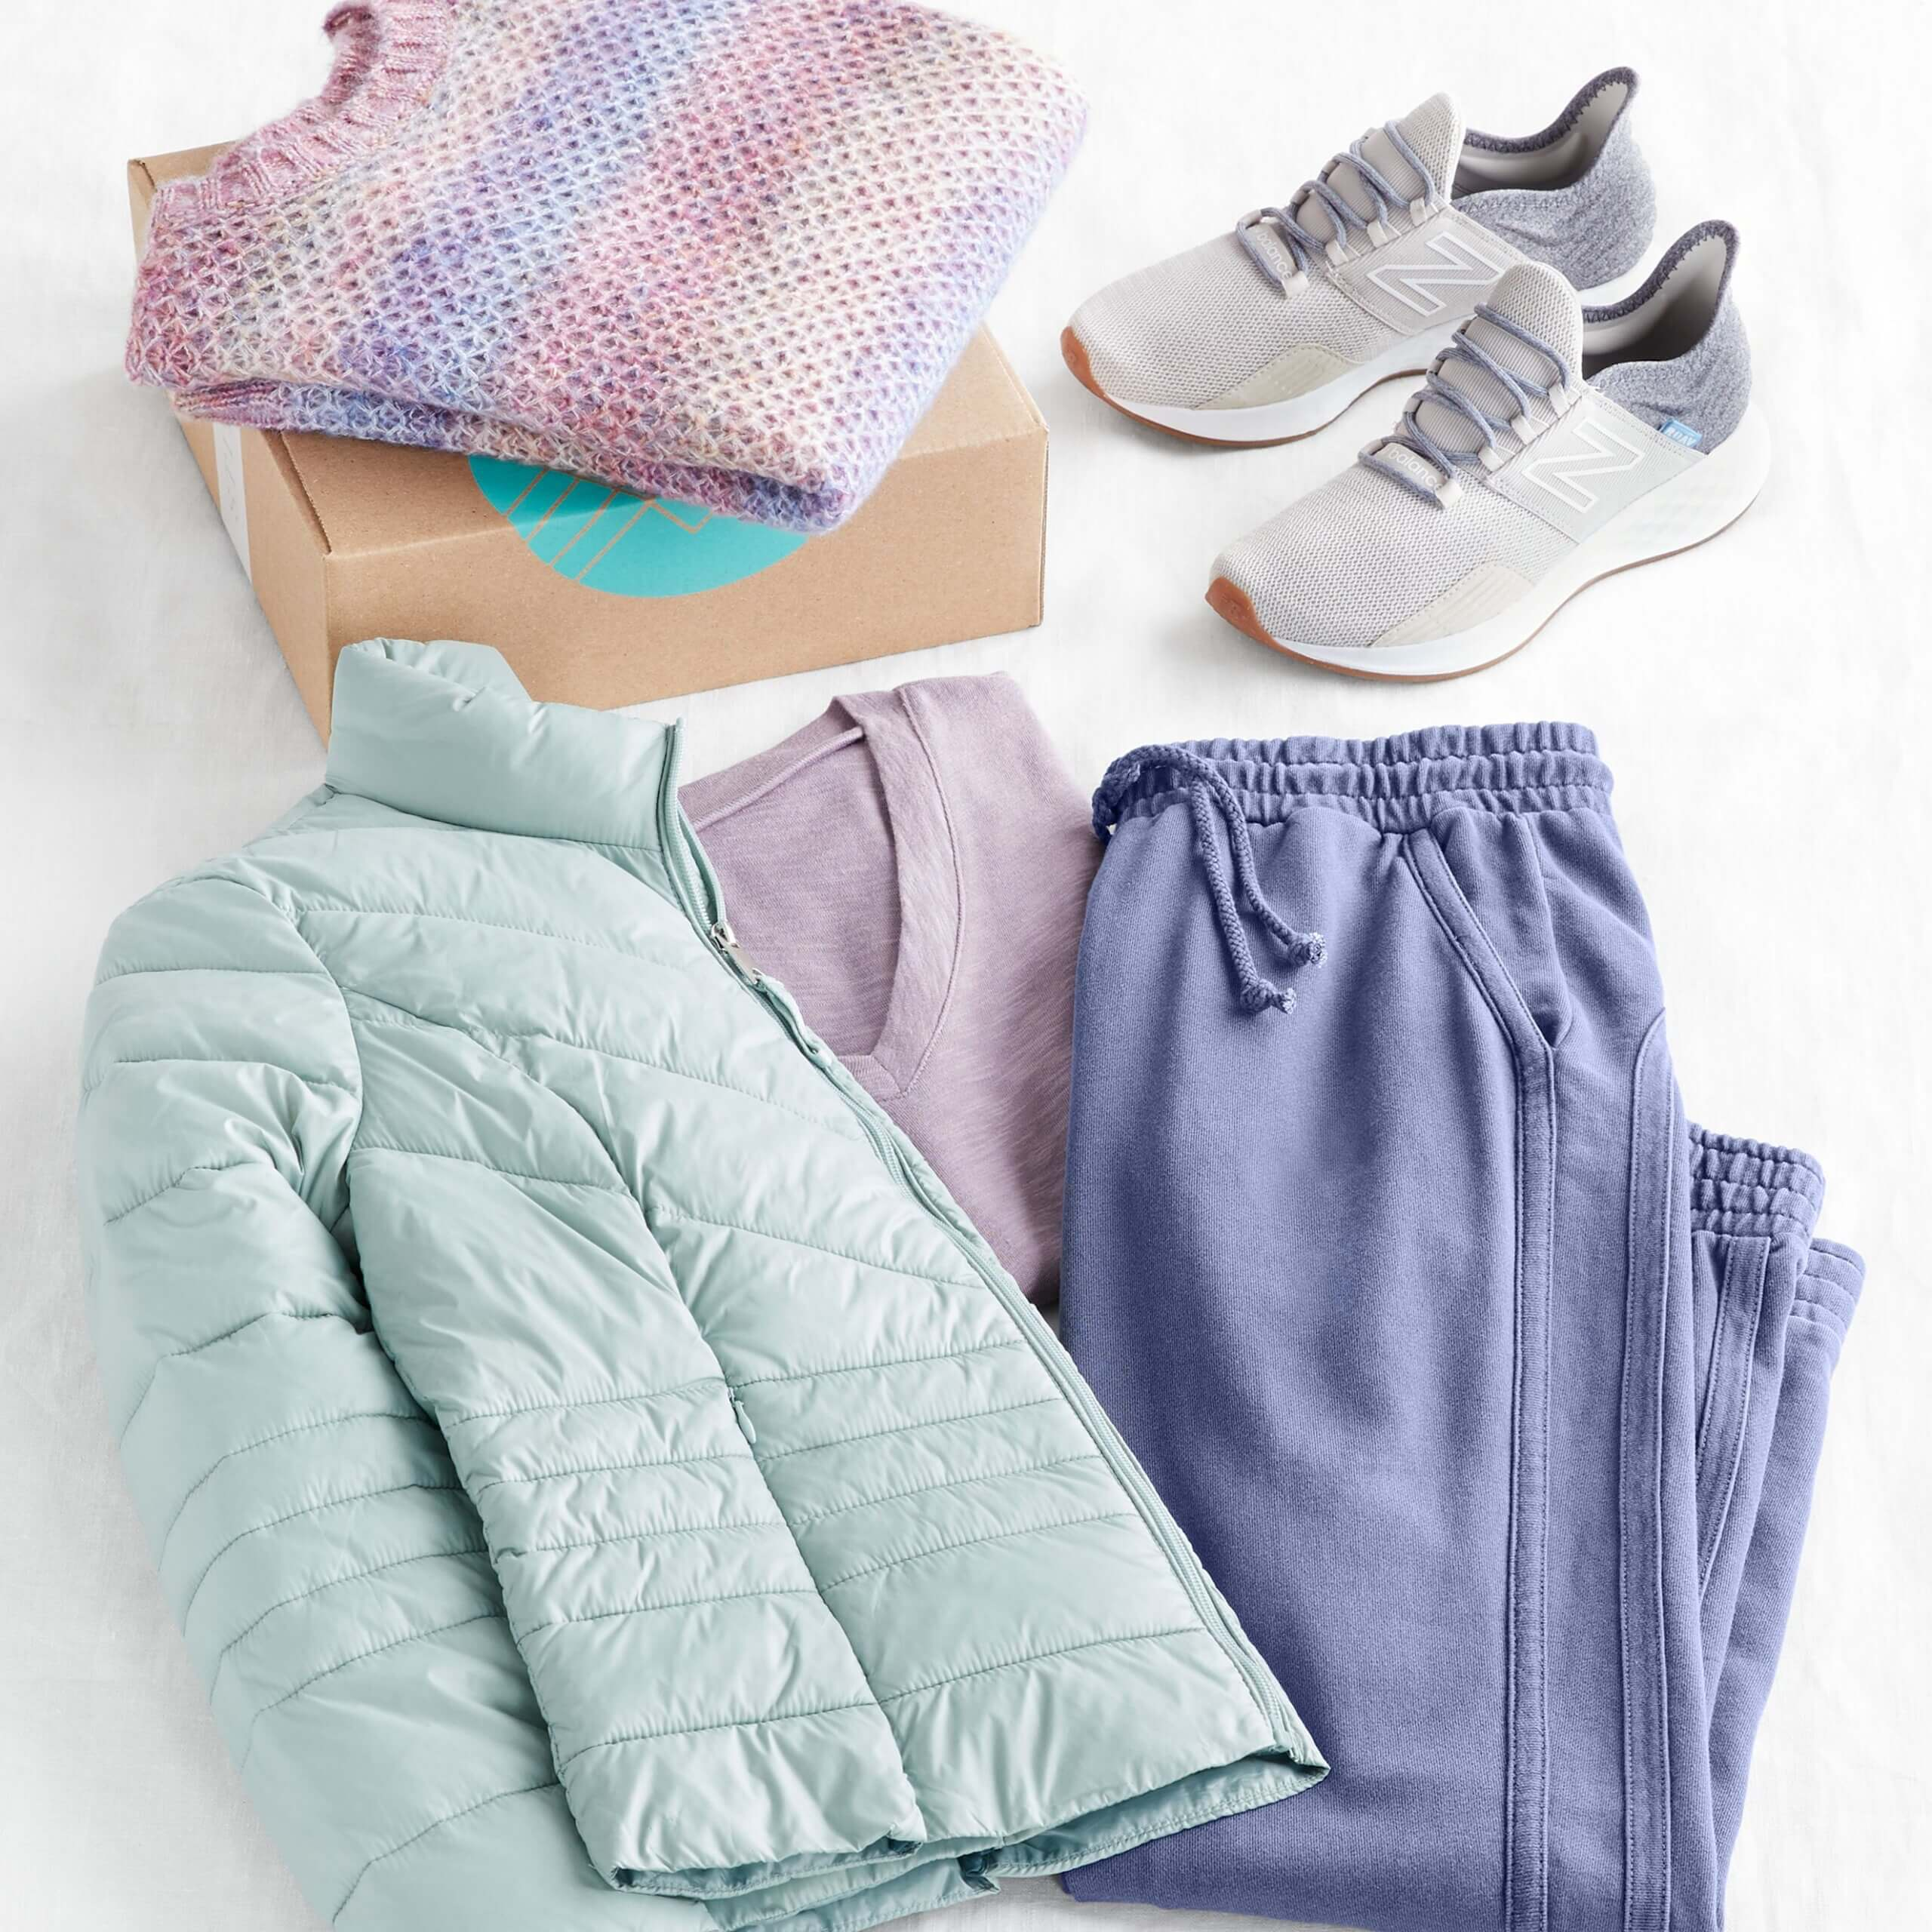 Stitch Fix Women's outfit laydown featuring mint puffer jacket, purple tee, blue jogger pants and grey sneakers, next to purple pullover on a Stitch Fix delivery box.